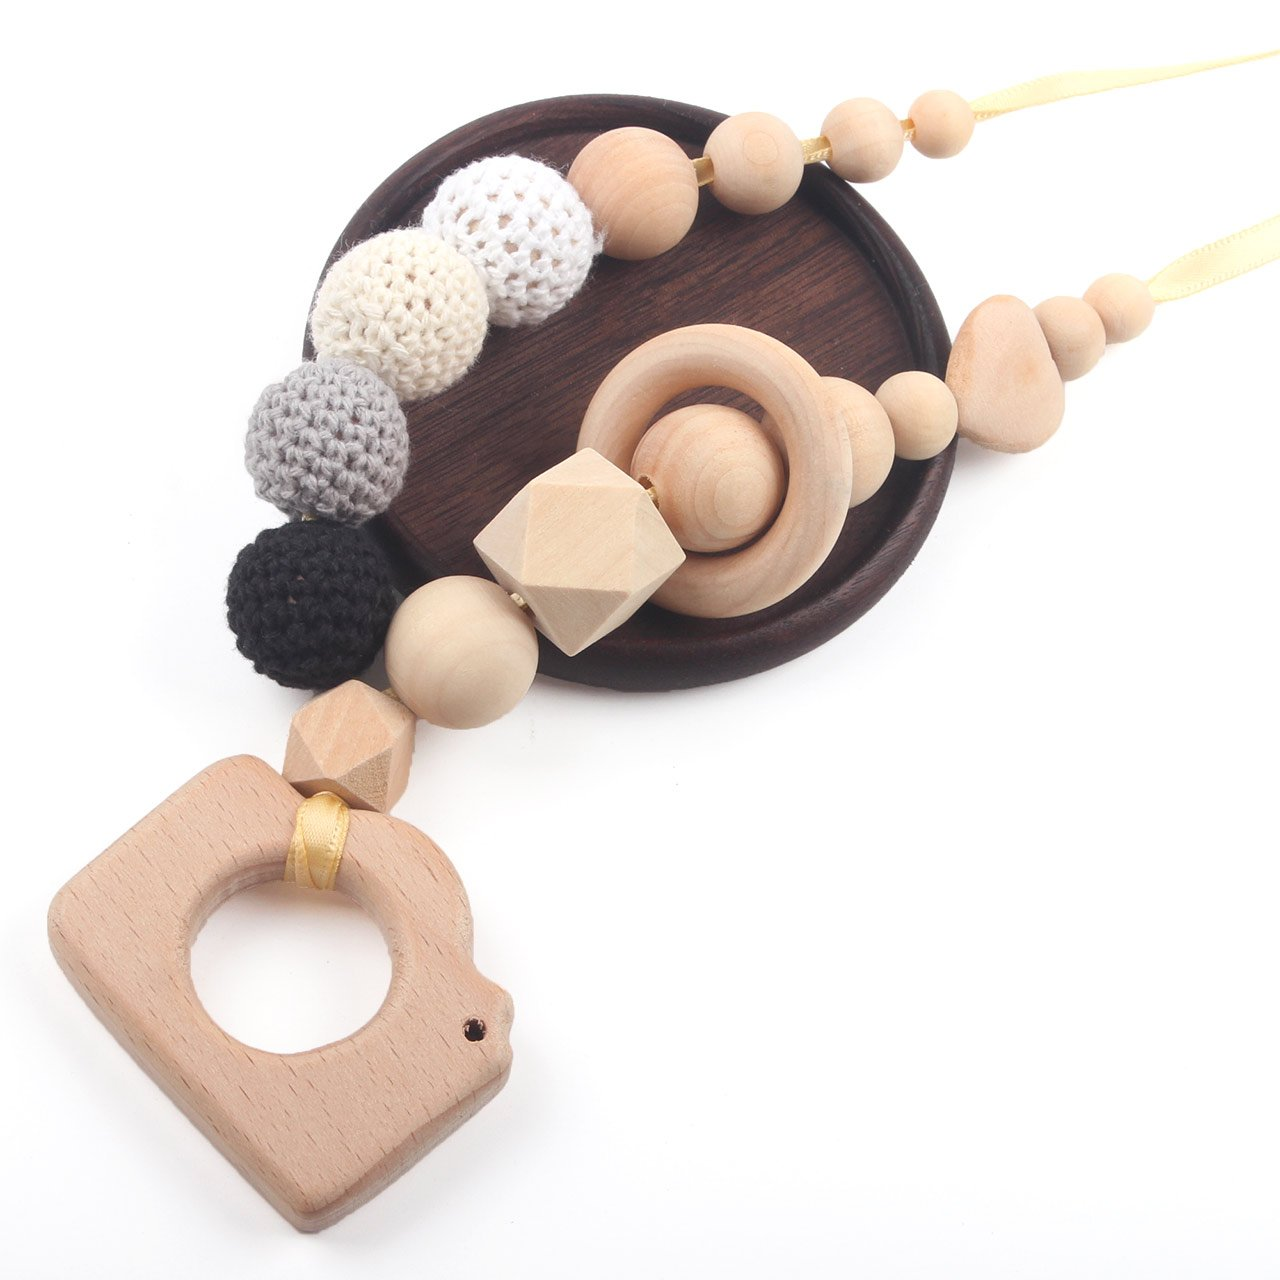 Teething Toys Infant Teether Baby Wooden Teether Necklaces Nursing Toy with Chew Beads BPA Free,Pink, Heart HI BABY MOMENT C-ANWO04